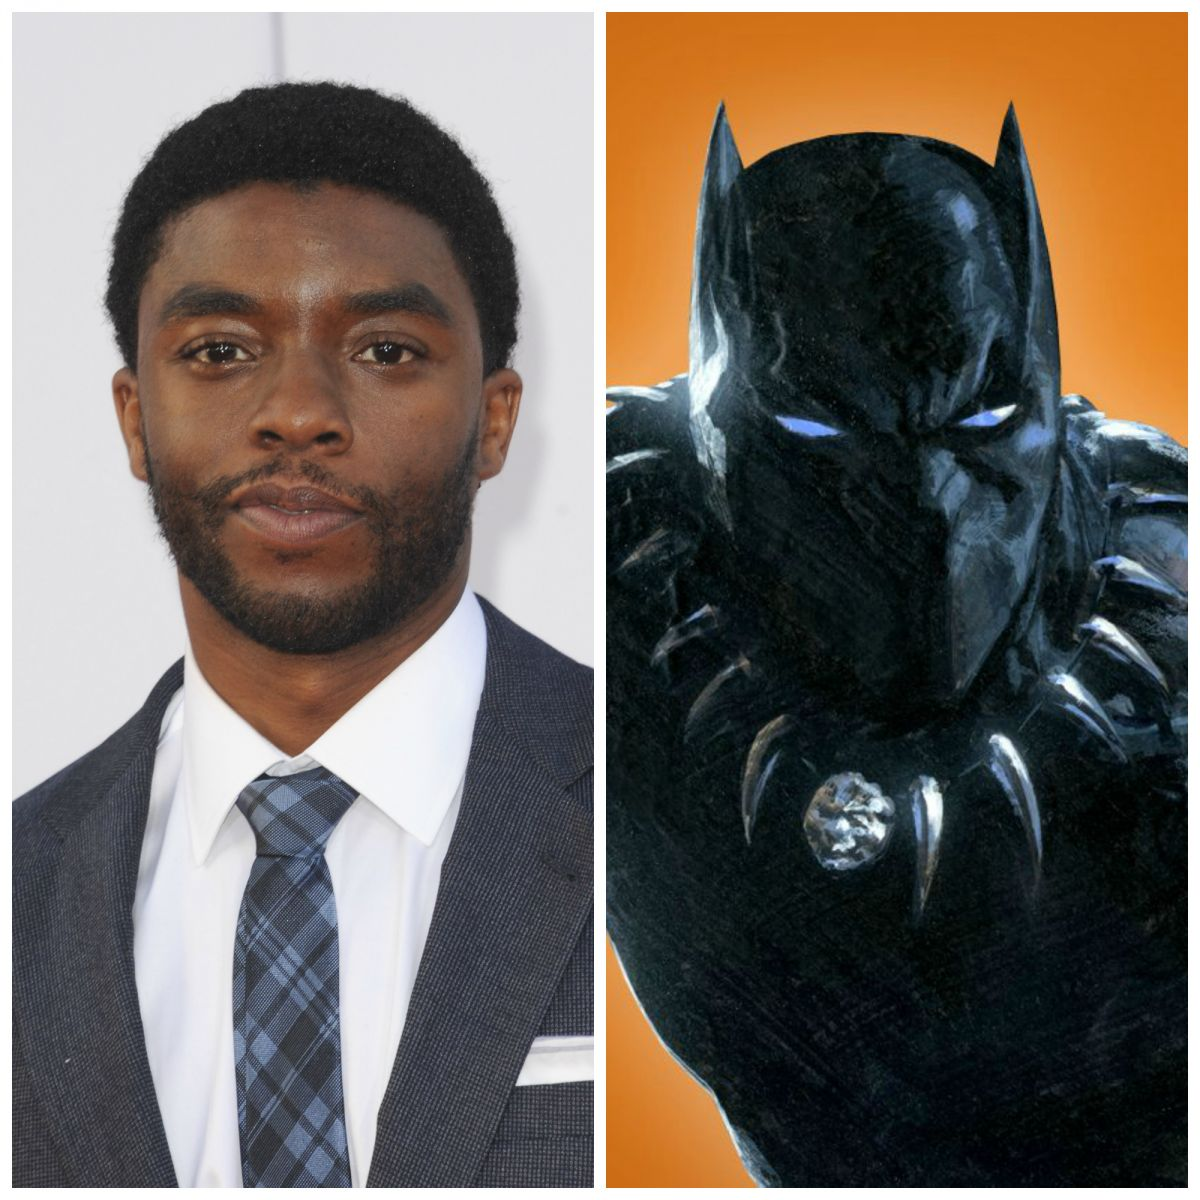 chadwick gay personals Let's quickly know chadwick boseman and find out if he is dating anyone currently chadwick boseman's affair who is currently kristen stewart dating is she gay.